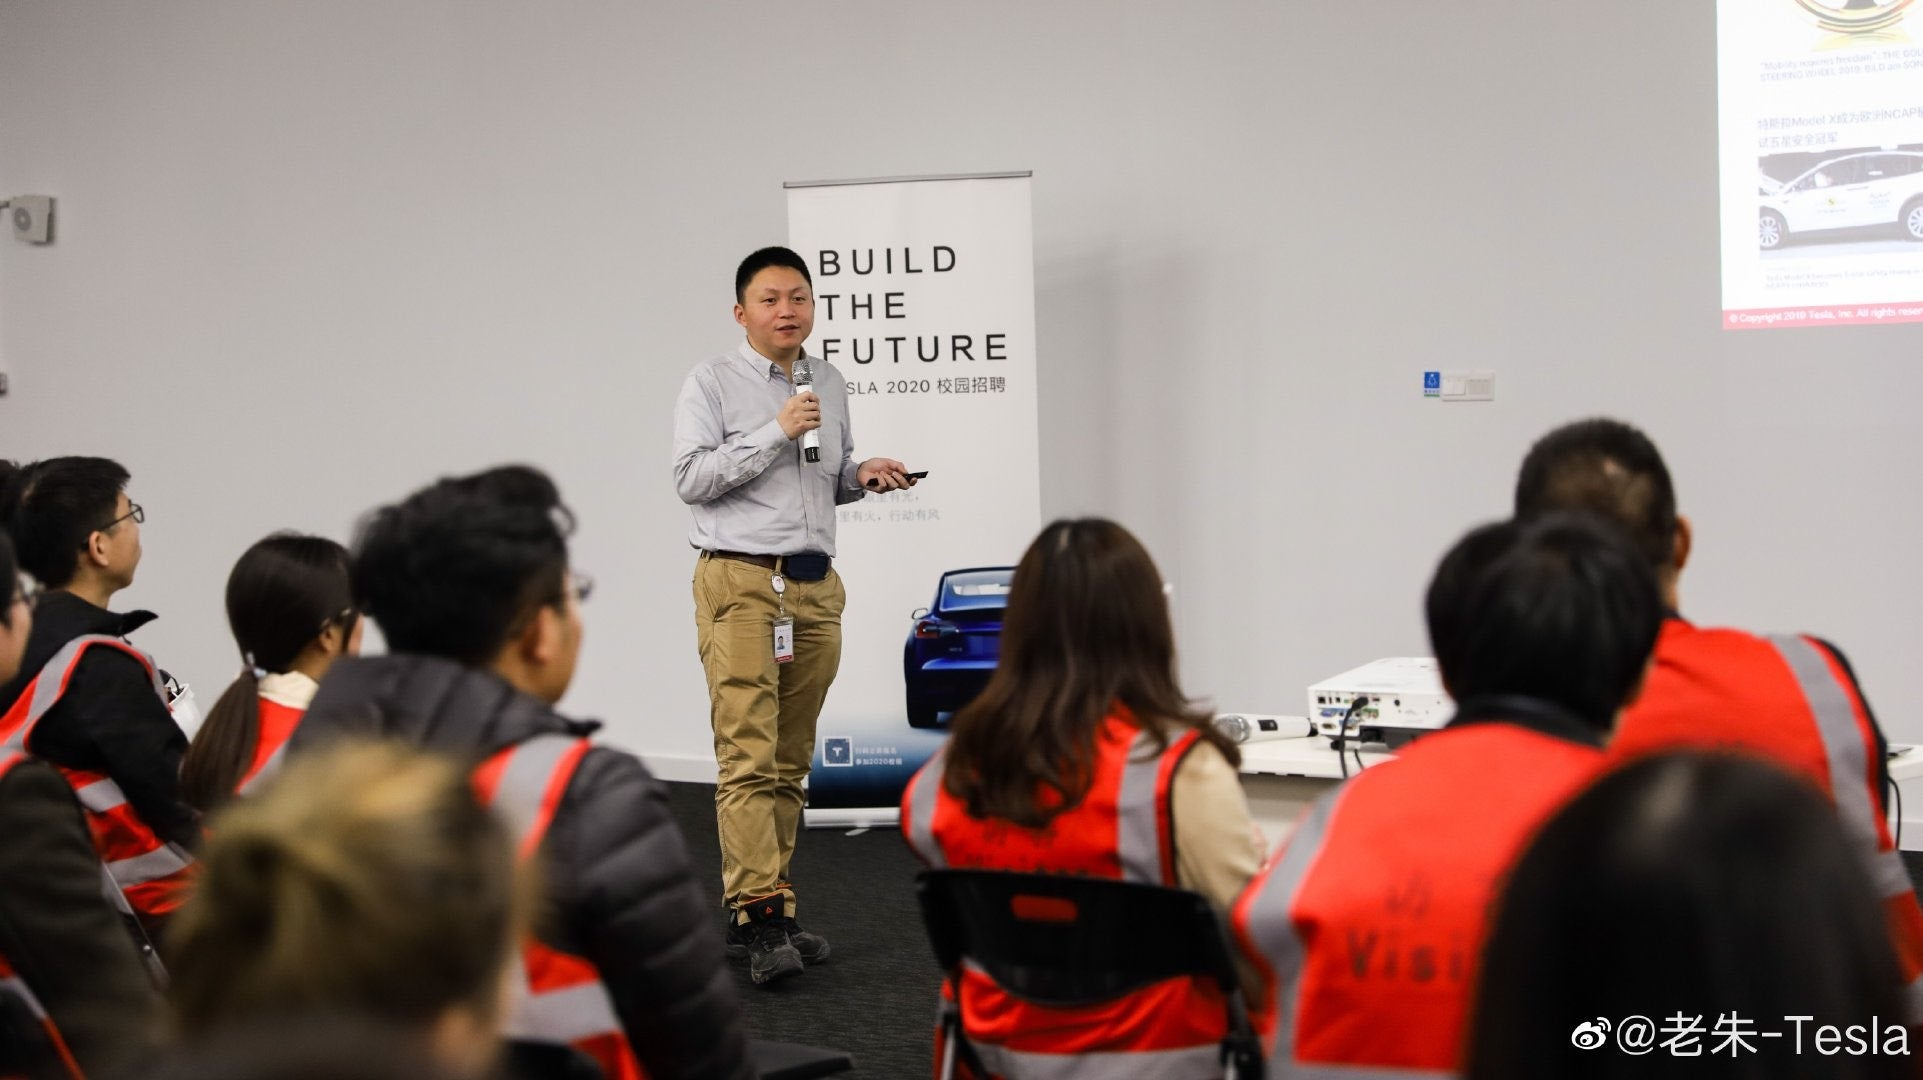 Tesla's Shanghai Gigafactory 3 manufacturing team opens campus recruitment — A brilliant move to prepare massive growth of China market!!